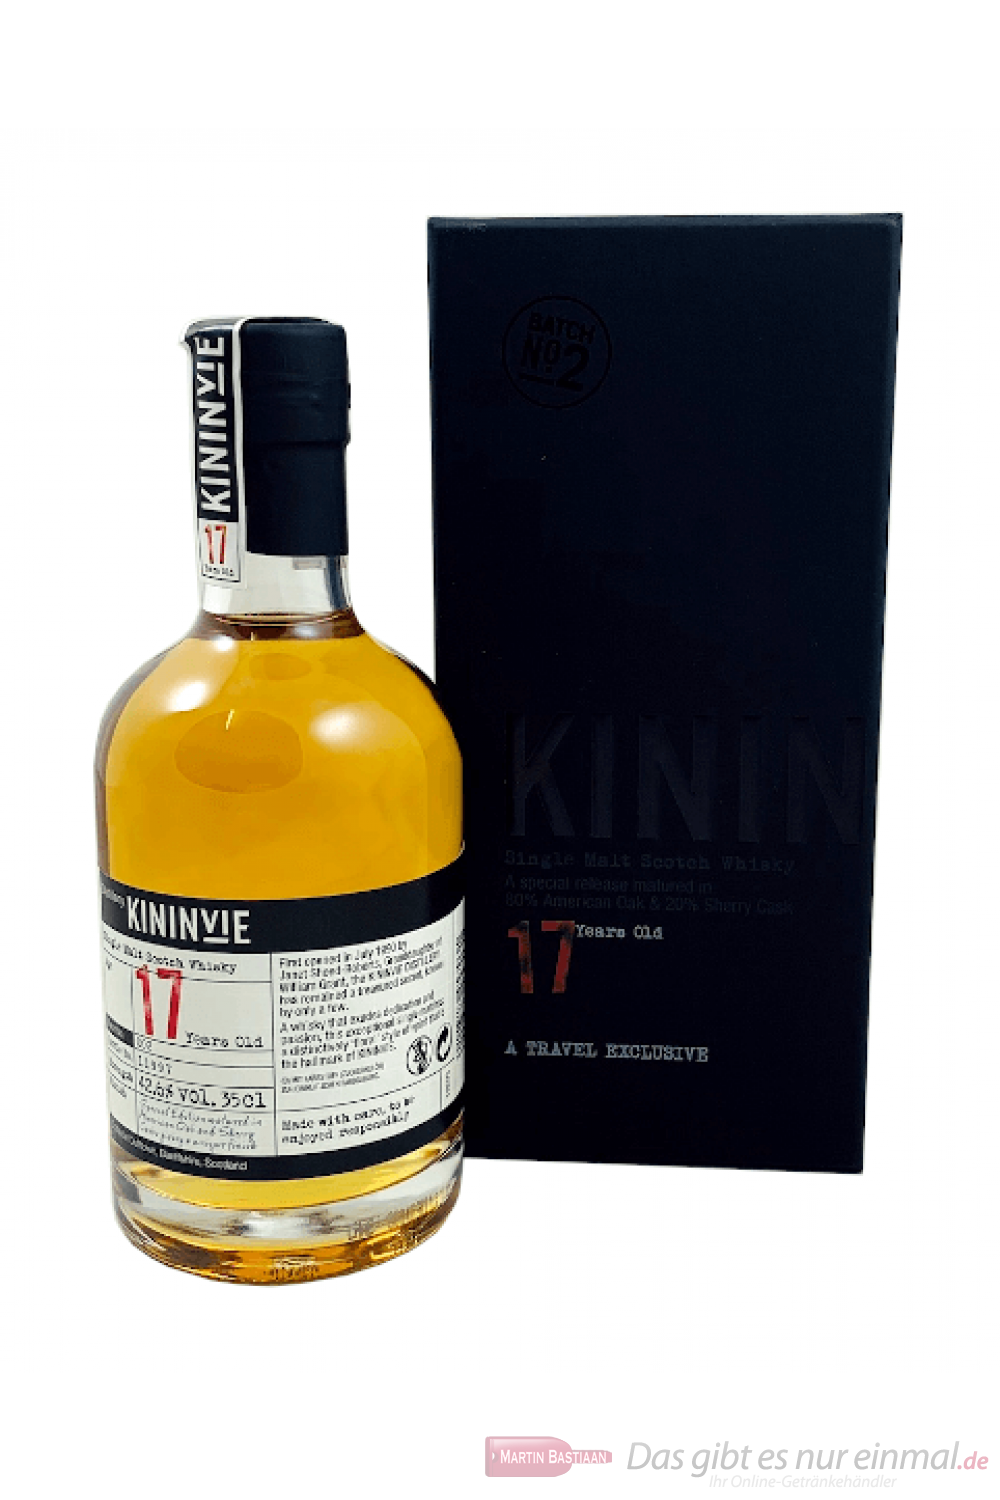 Kininvie 17 Years Batch No. 2 Single Malt Scotch Whisky 0,35l